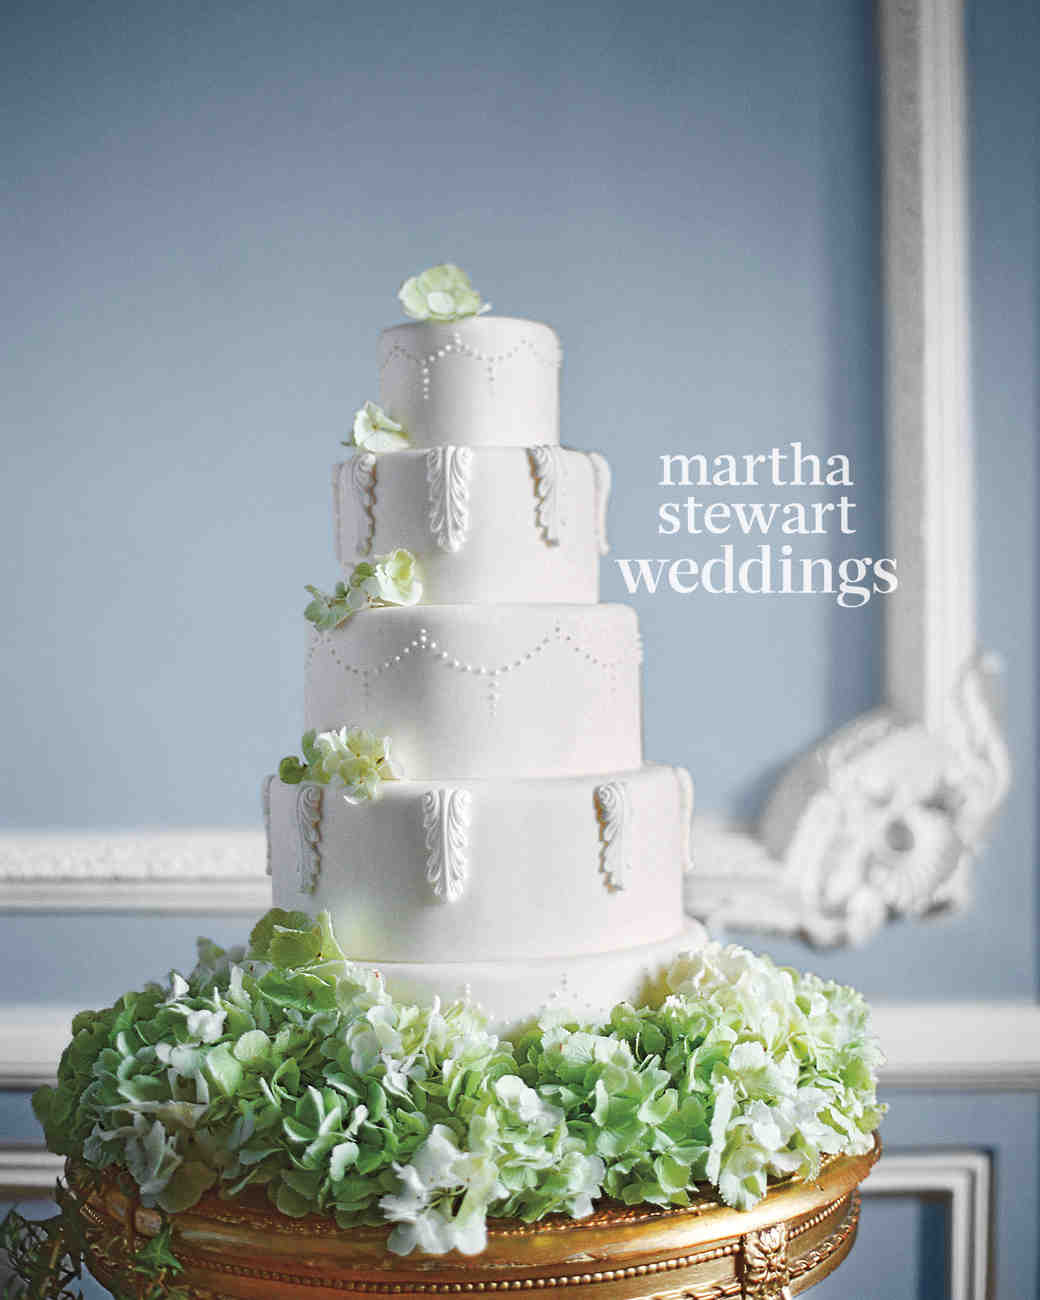 Five-Tiered White Wedding Cake with Green Flowers and French Architectural Molding